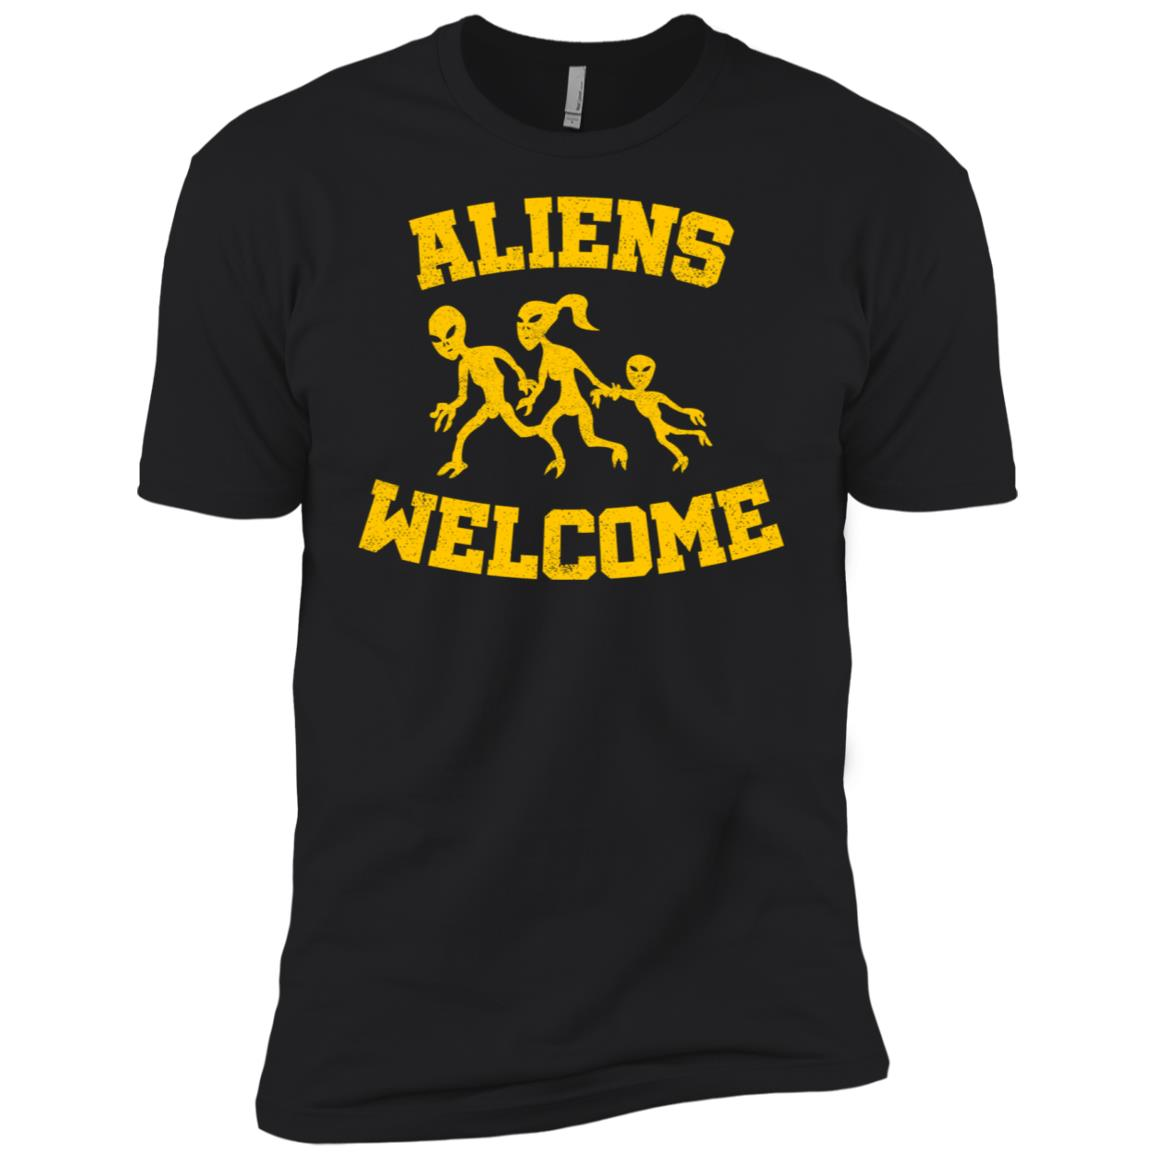 Aliens welcome funny alien and extraterrestrial ls Men Short Sleeve T-Shirt